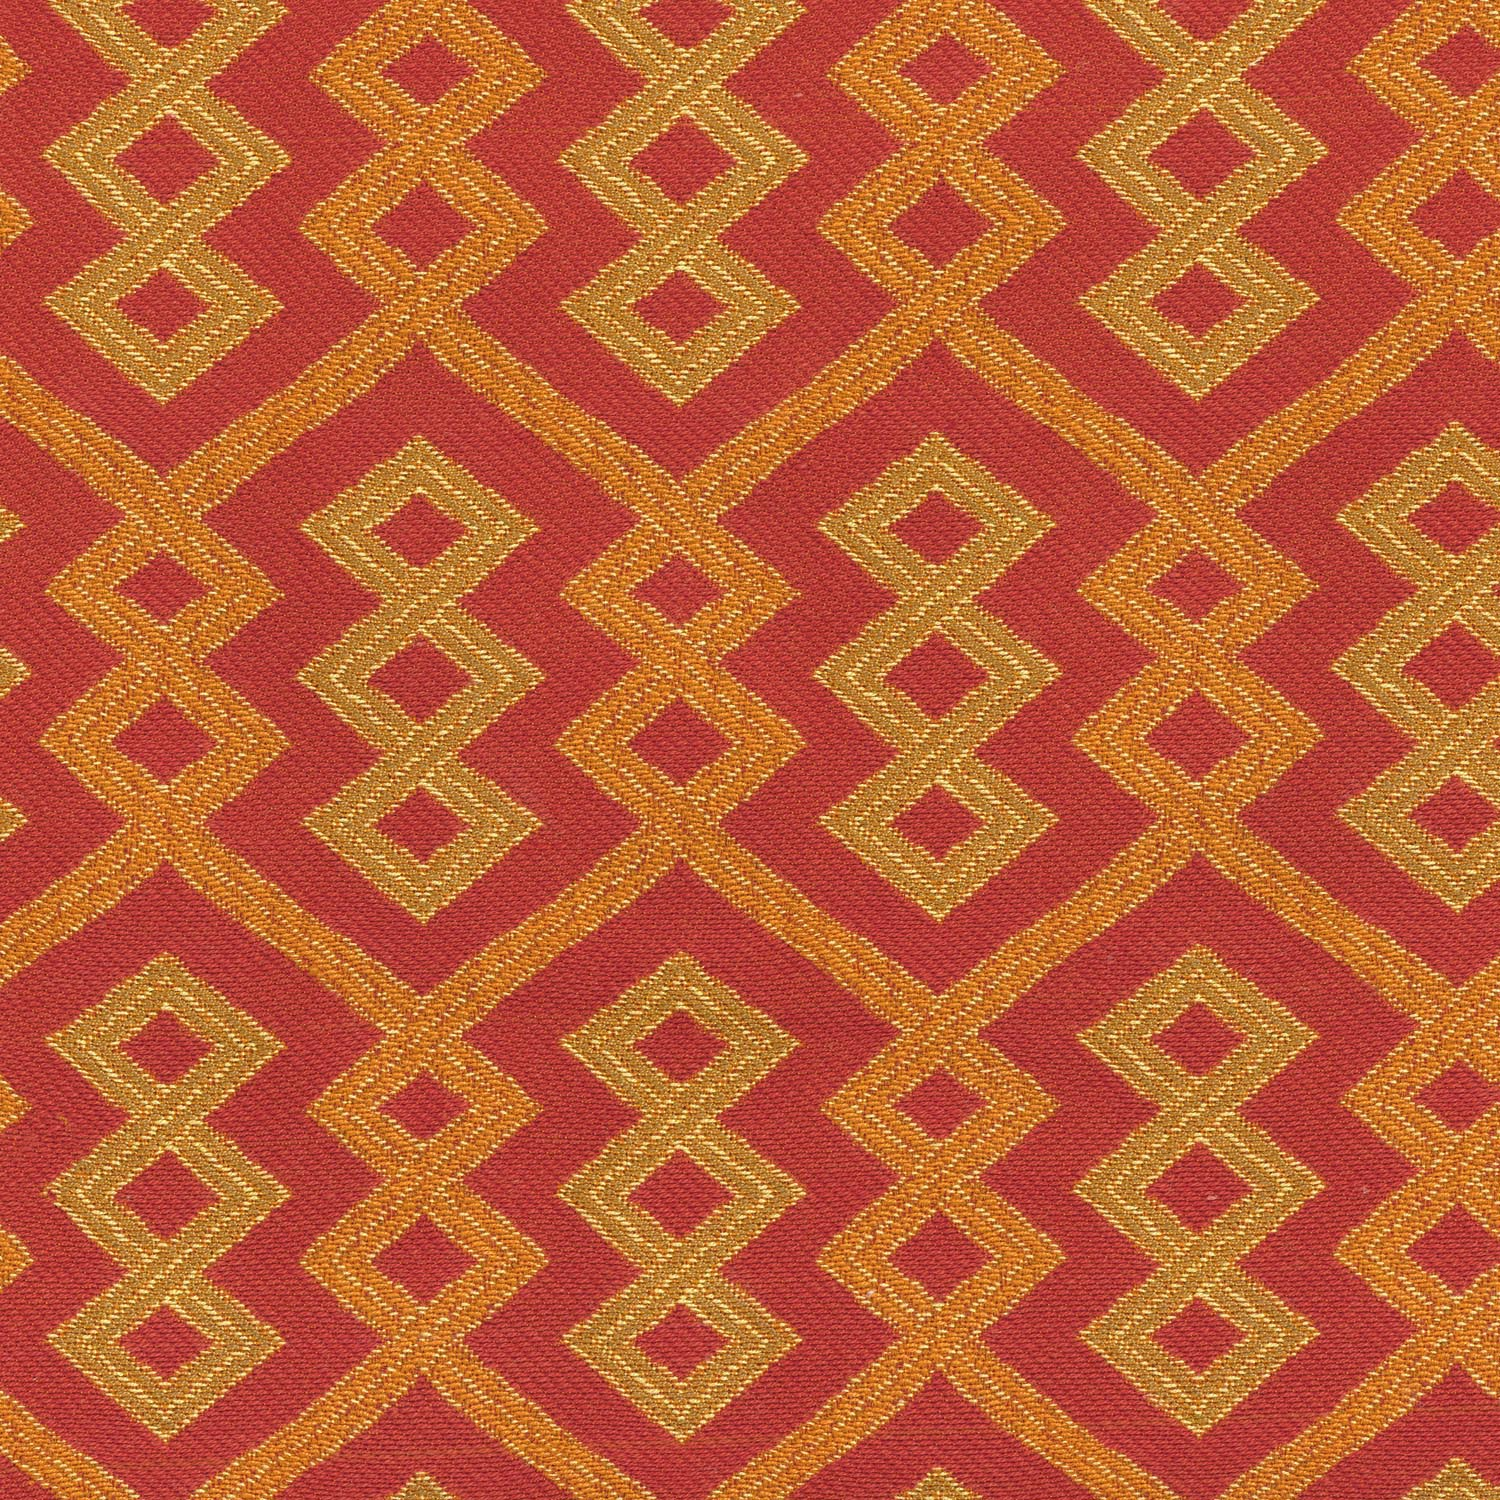 Home Decor 8\u0022x8\u0022 Fabric Swatch-IMAN Home Tribal Twist Spice